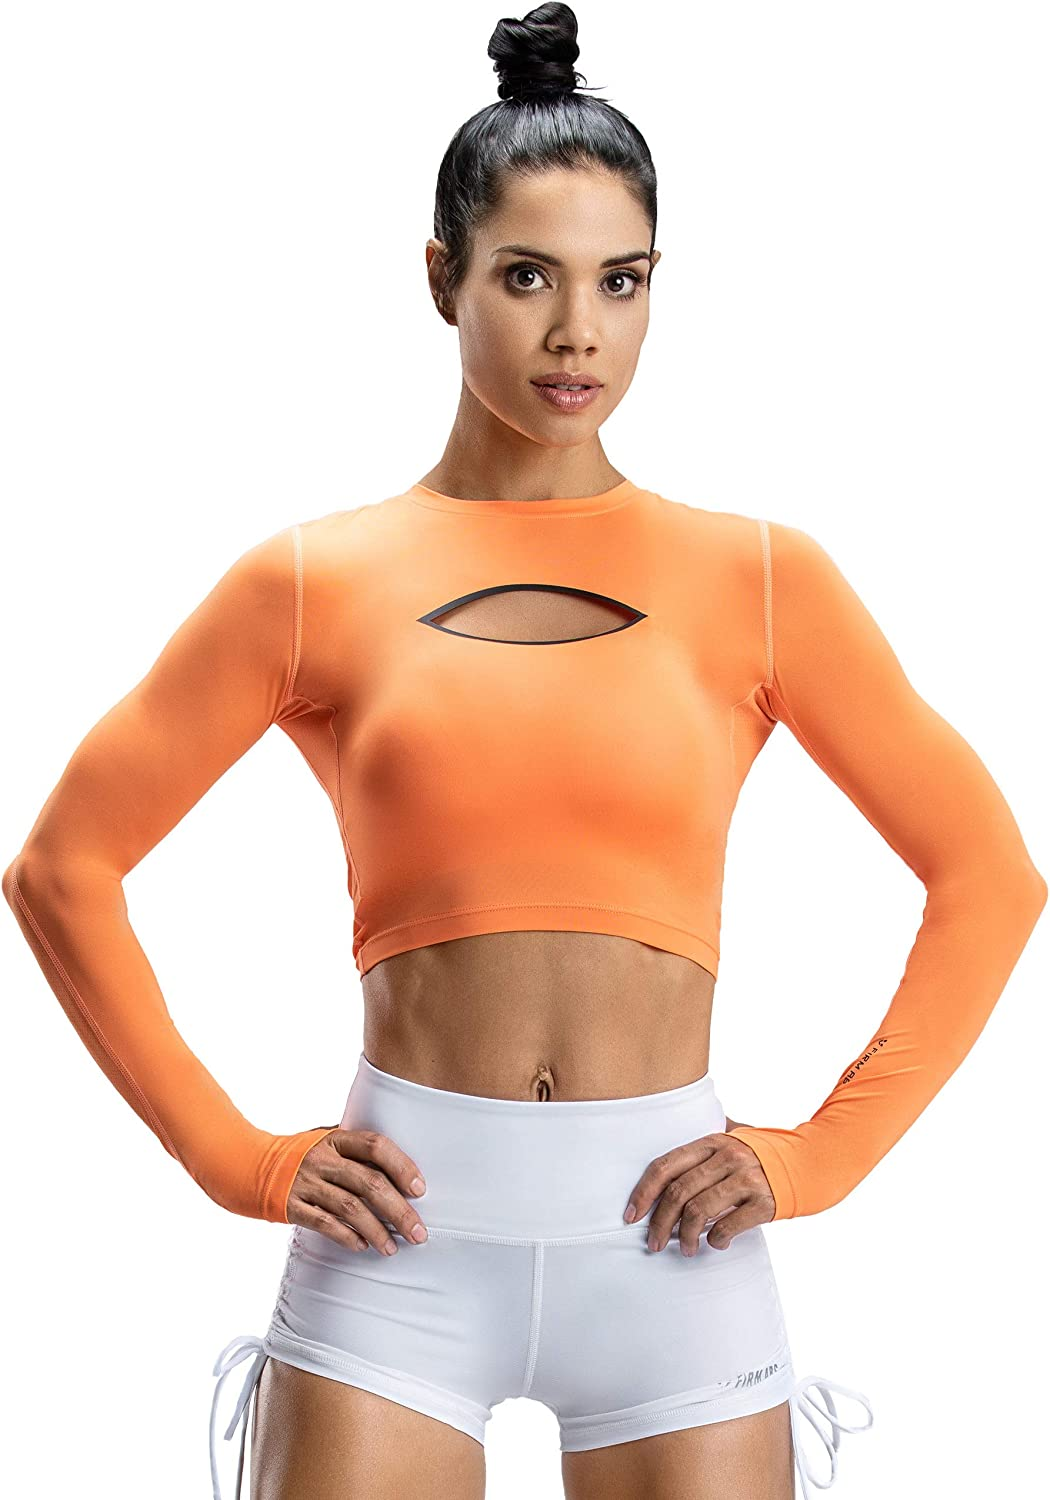 V LOVEFIT Firm ABS Womens Compression Shirt Dry Fit Long Sleeve T Shirts Workout Yoga Running Tops Crewneck Slim Fit Tops